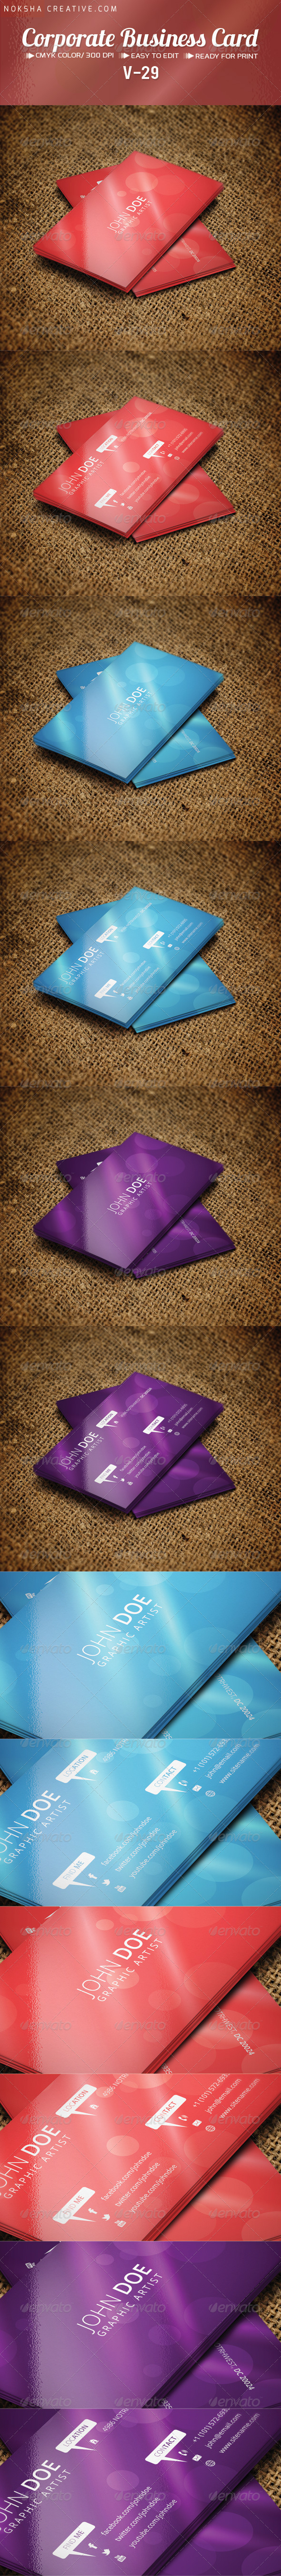 GraphicRiver Corporate Business Card V 29 5447105